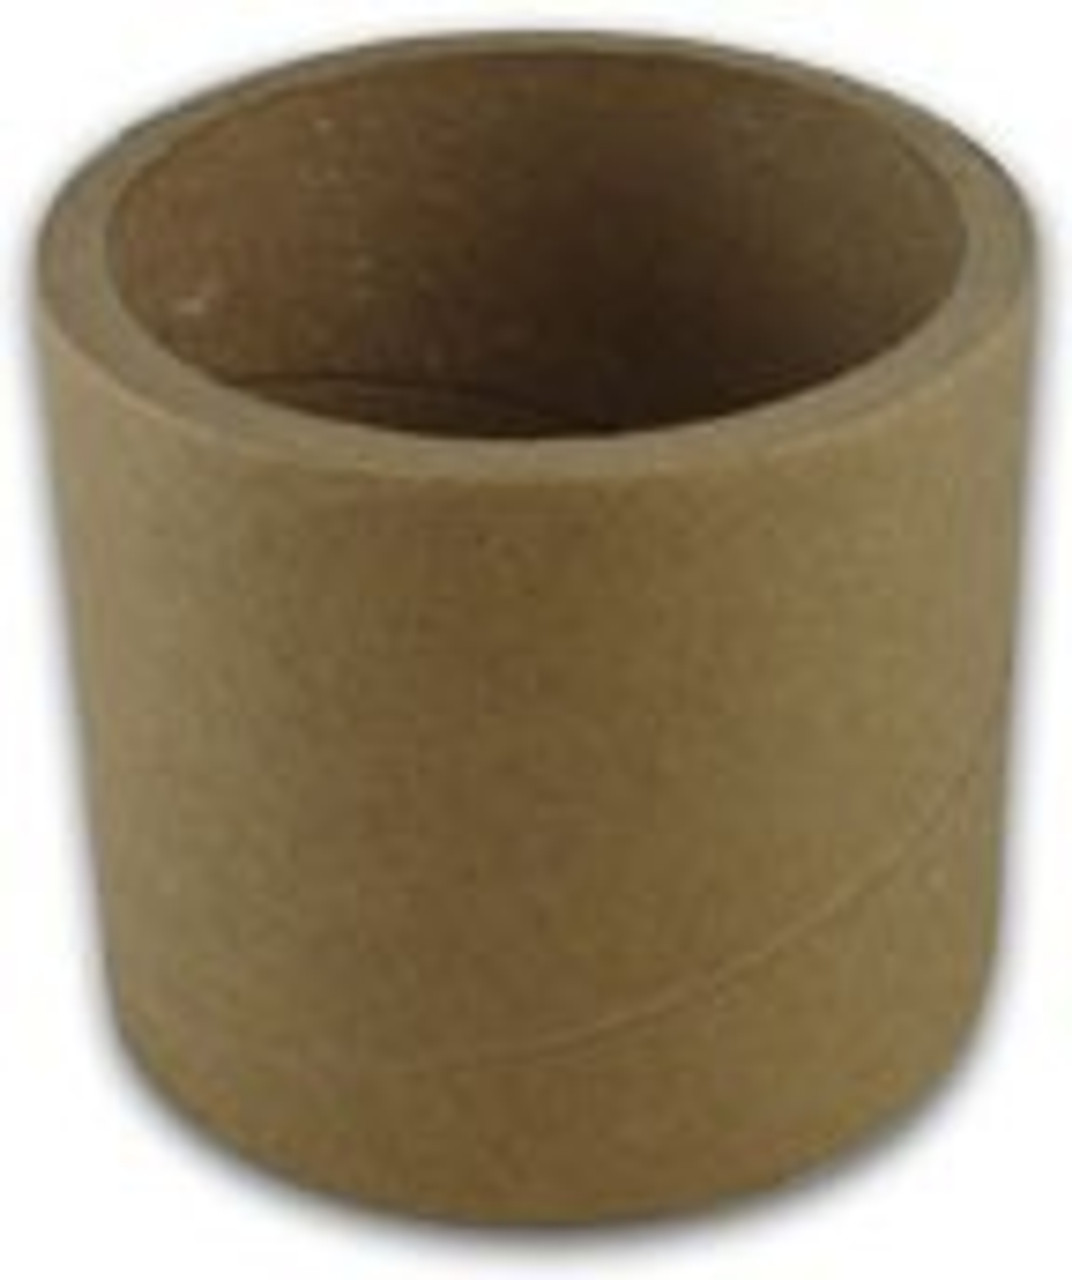 "Empty Cores 3"" X 6 1/8"" wide - Box of 50 